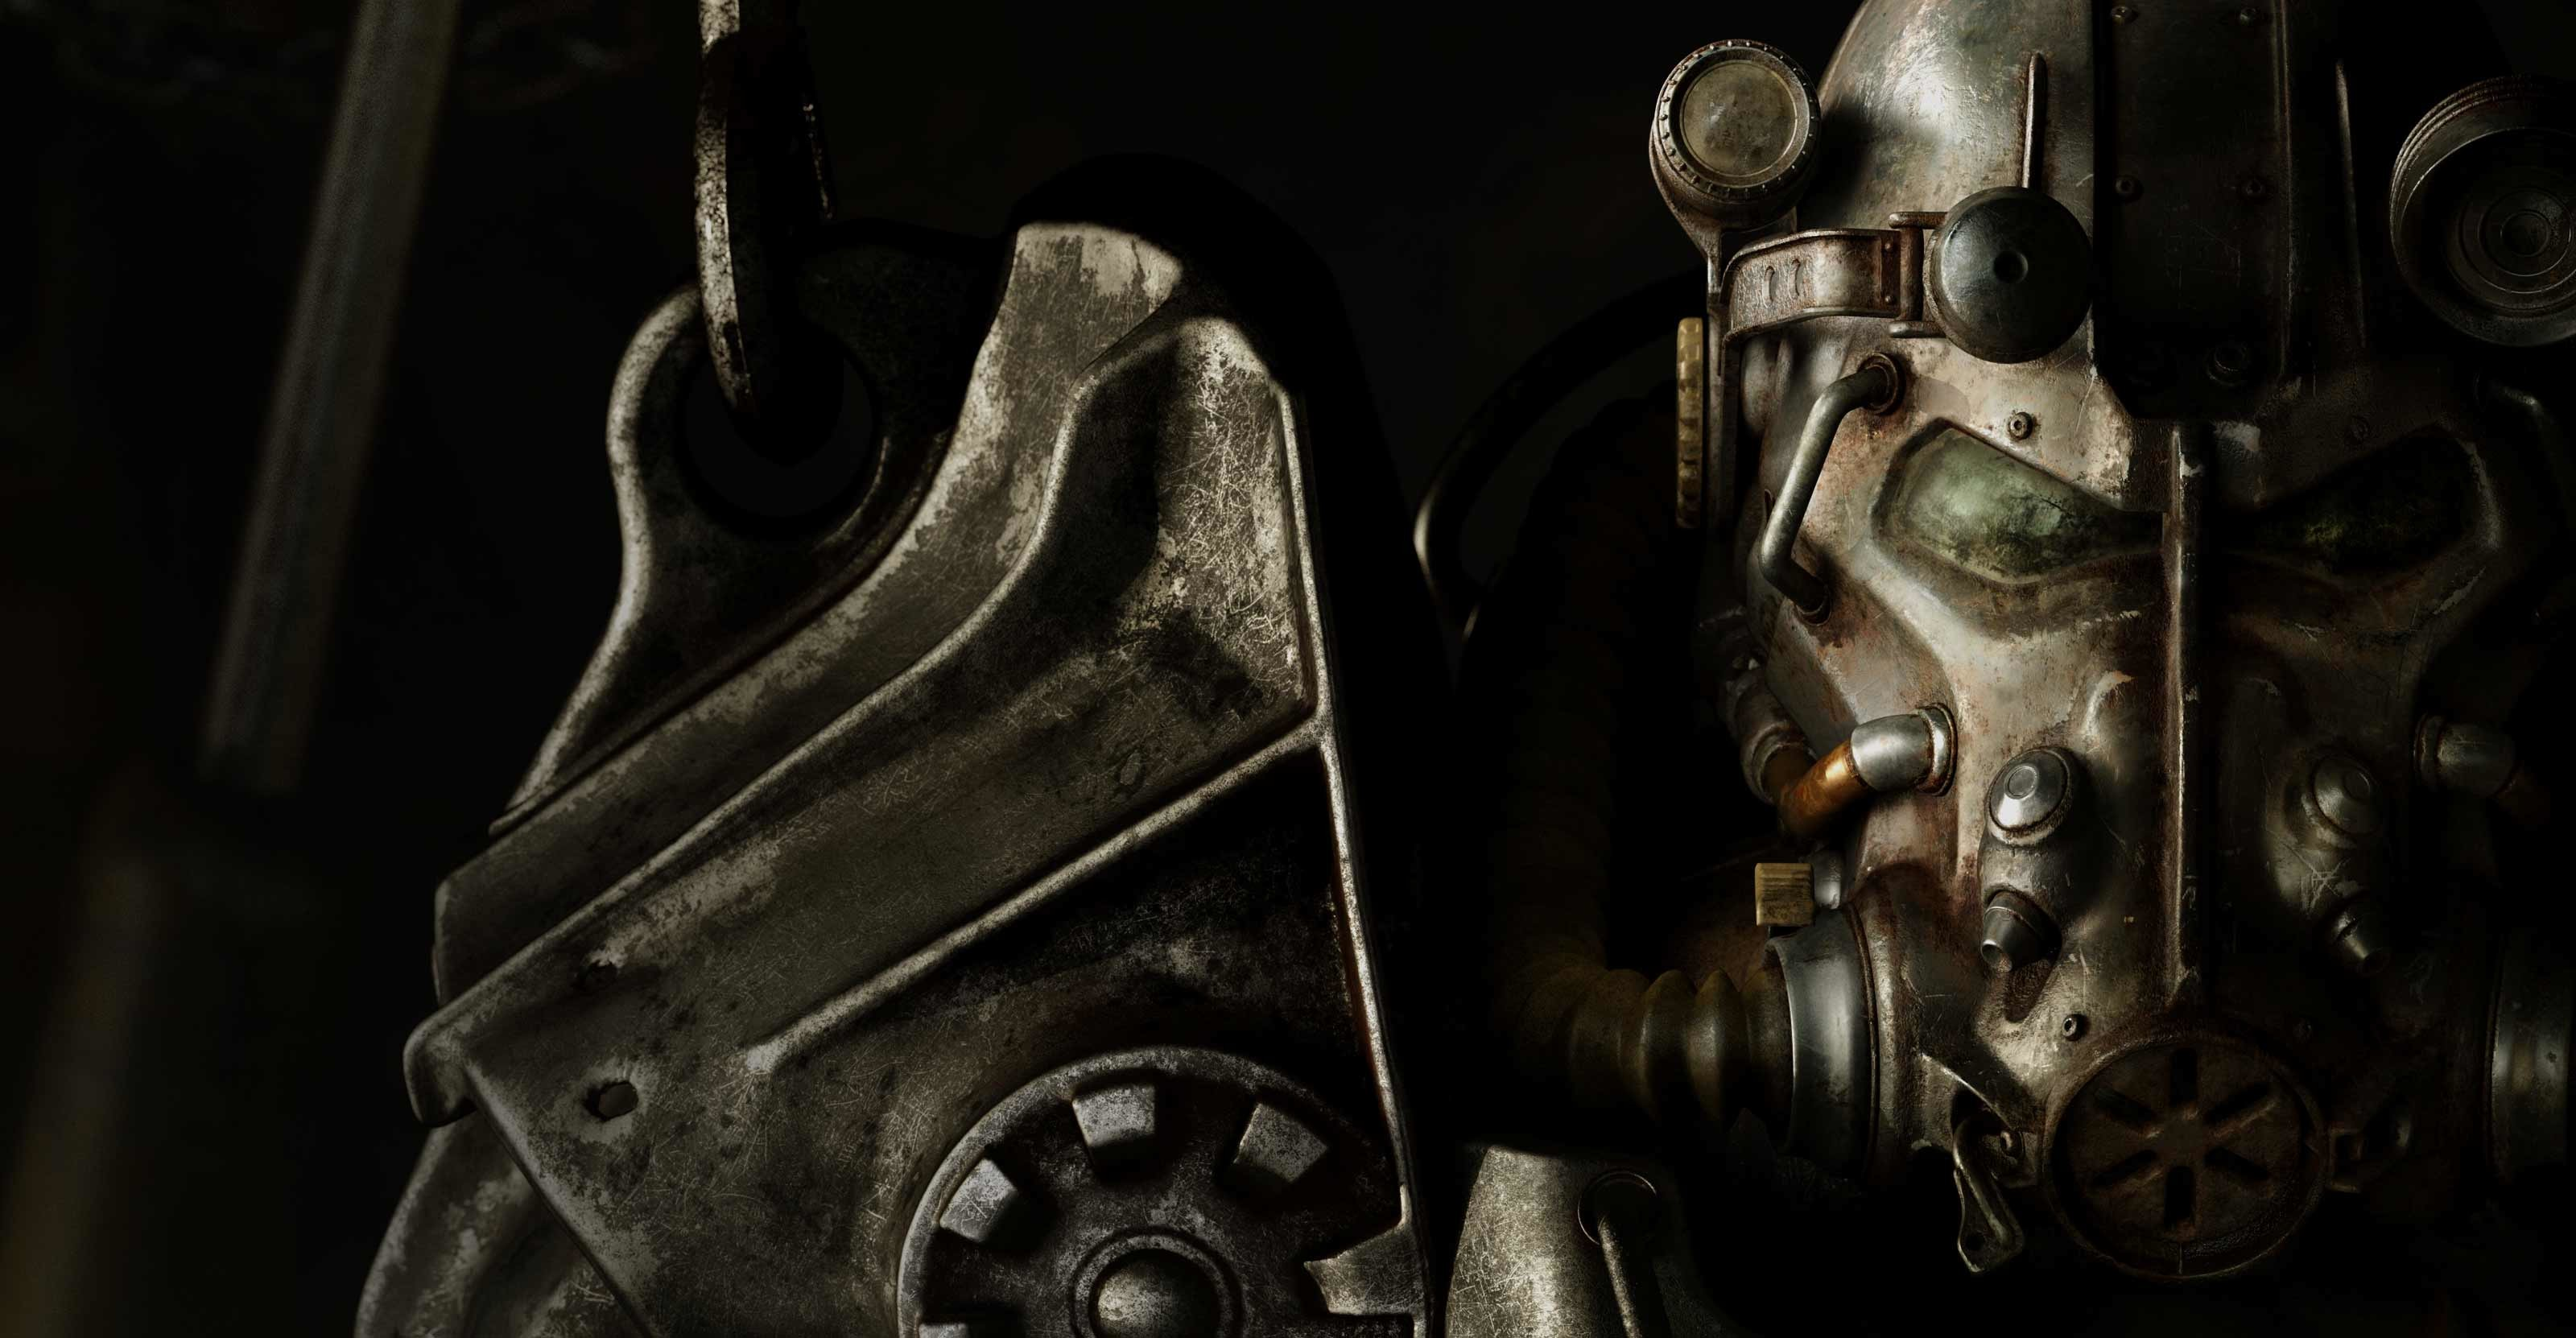 Knight In Armor High Resolution Wallpapers Background Wallpaper .au